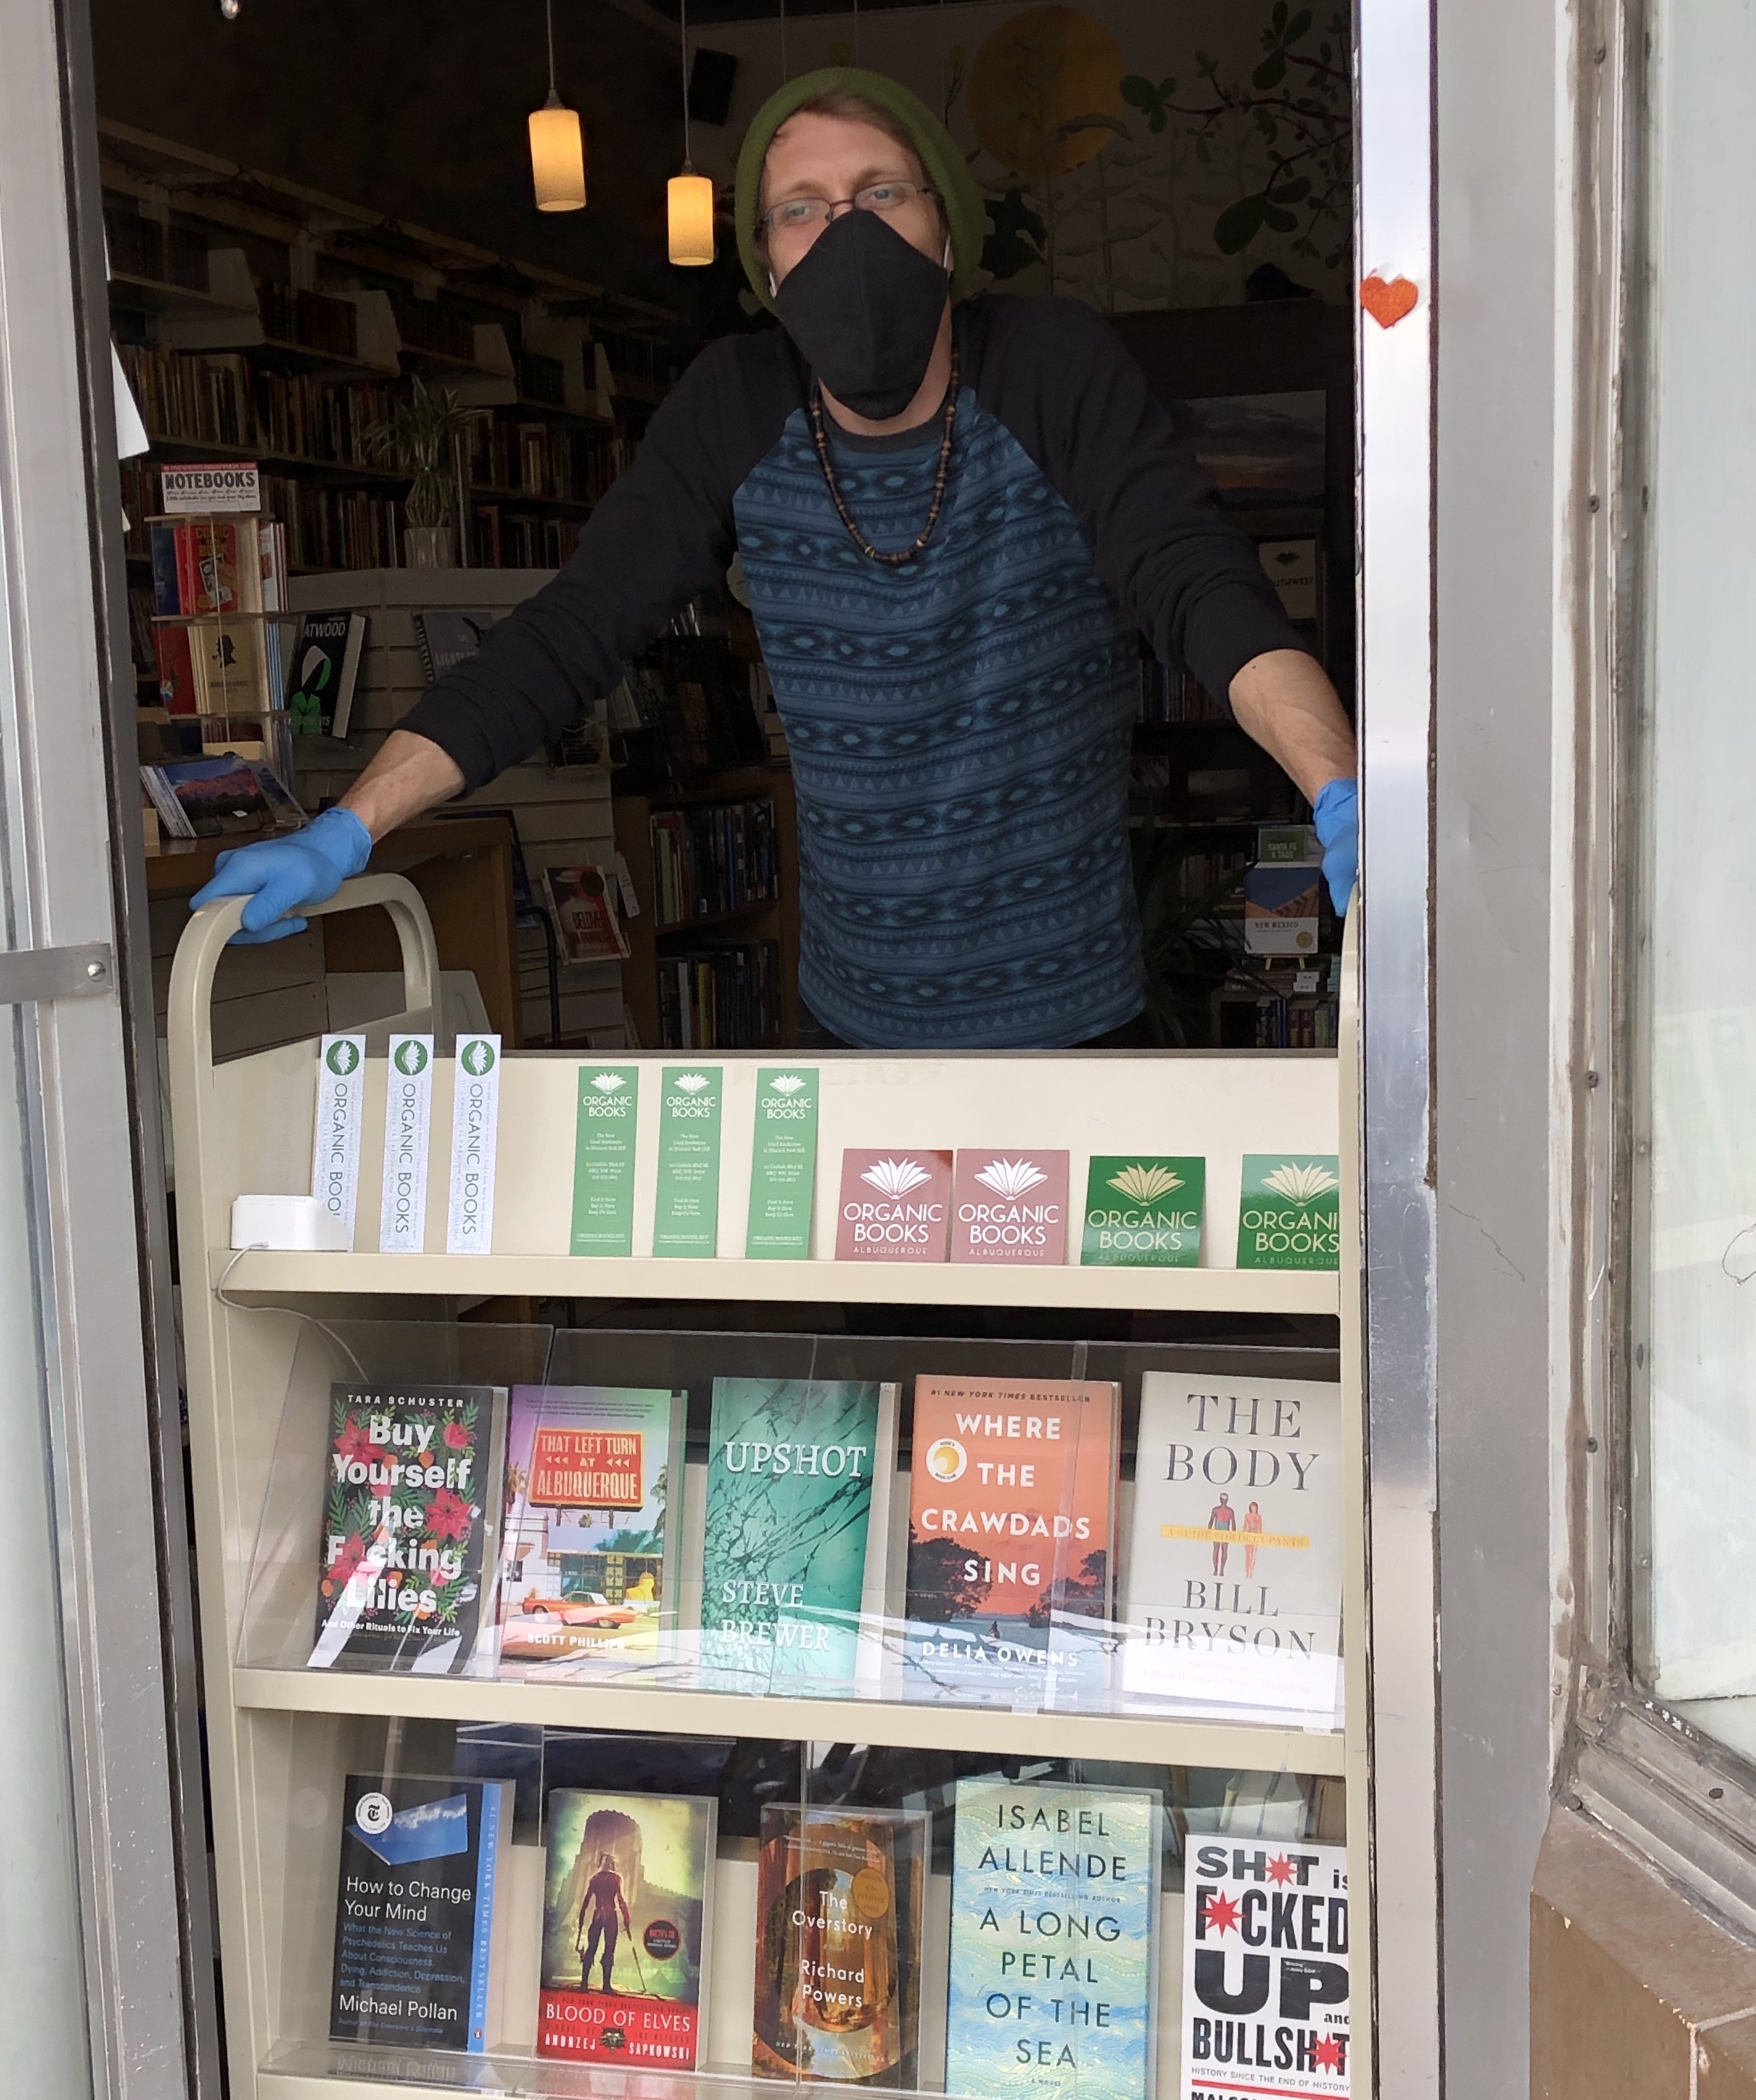 Seth Brewer, a co-owner of Organic Books in Albuquerque, New Mexico, at his bookstore before a stay-at-home order closed it down.